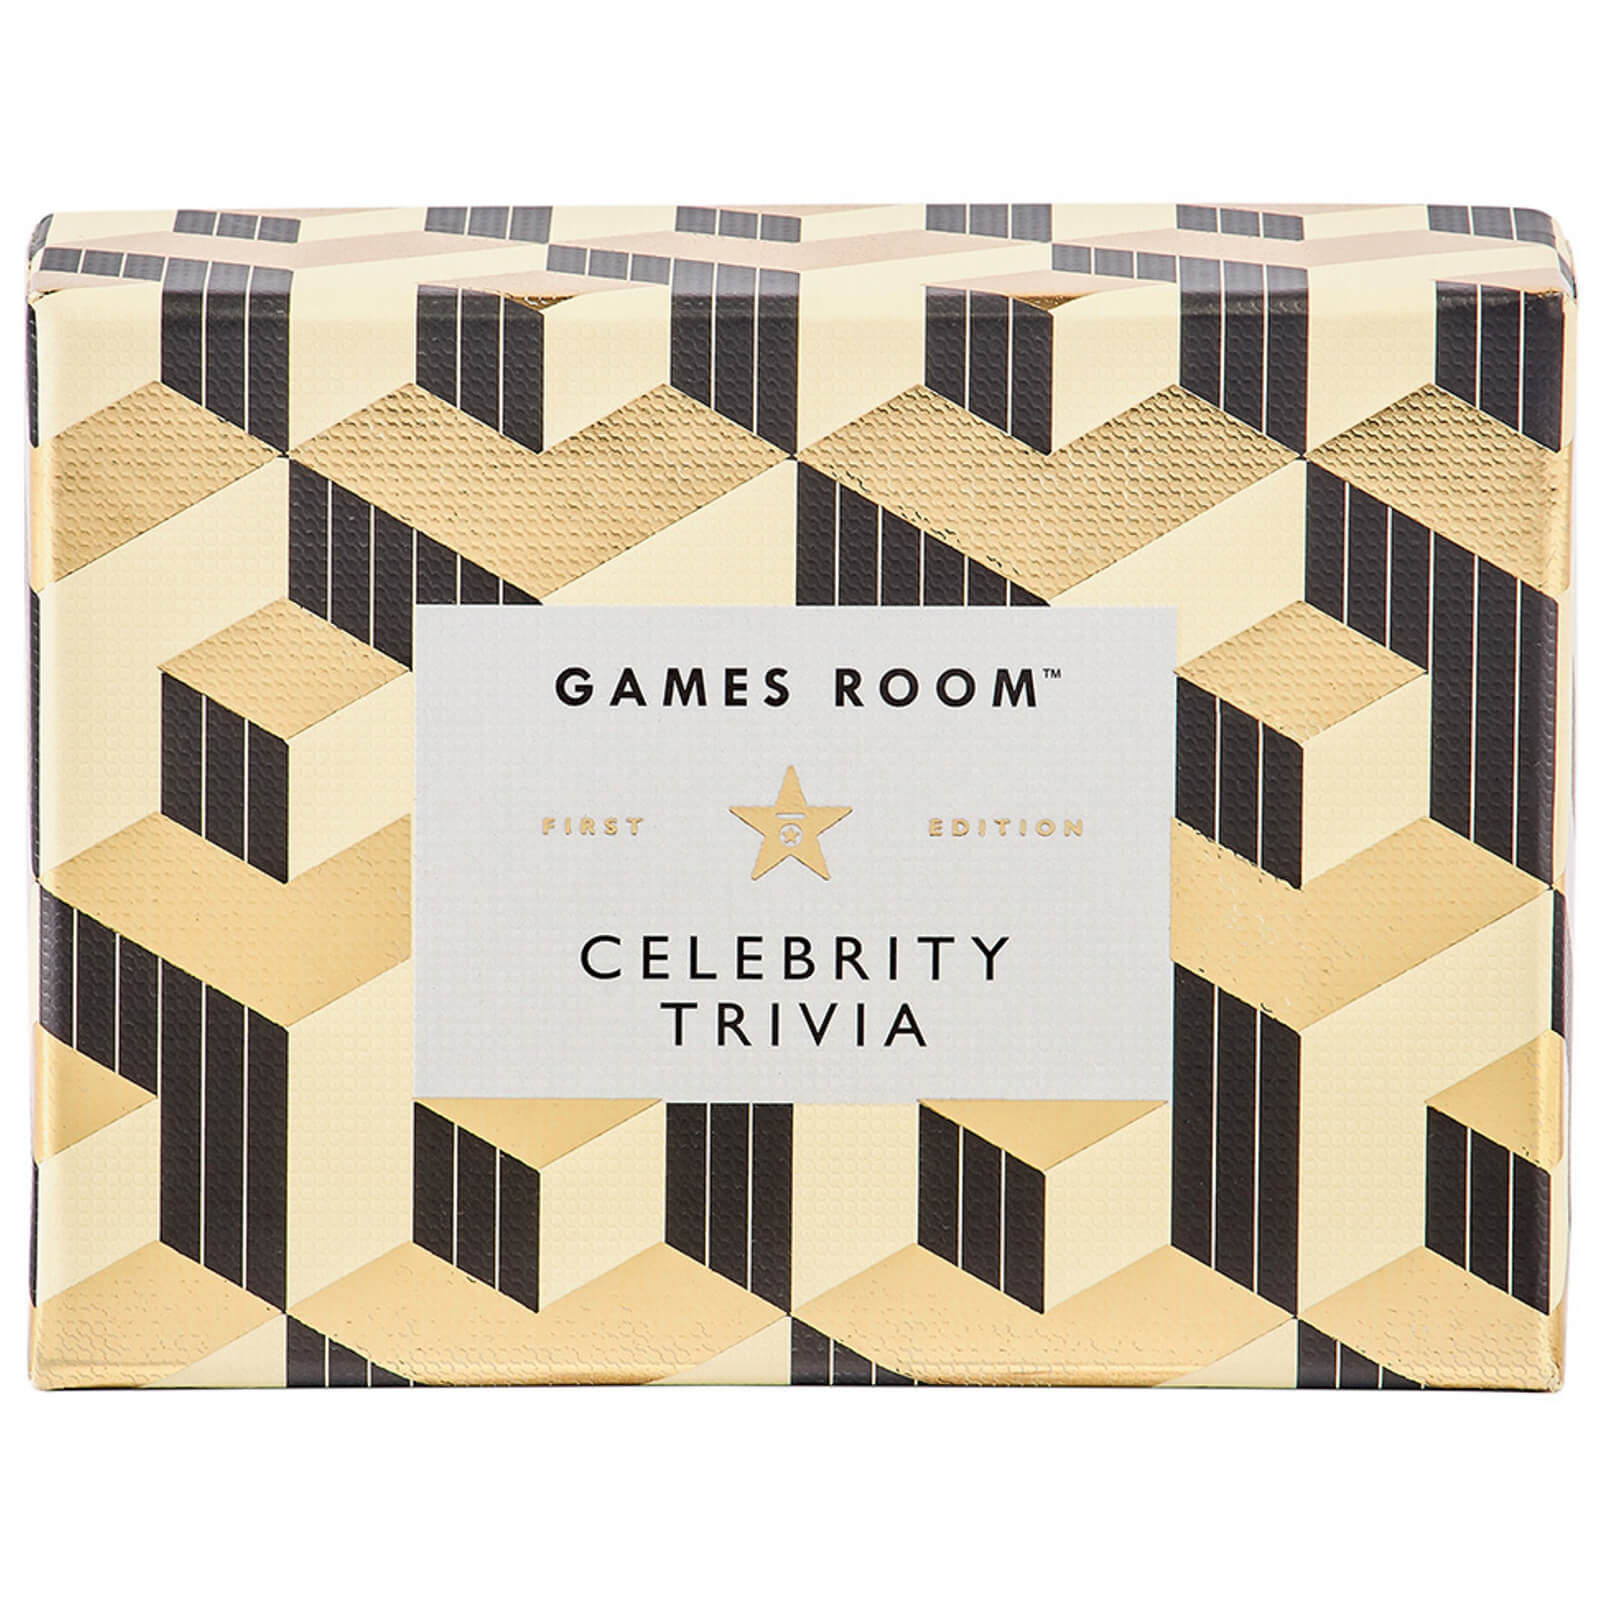 Image of The Games Room Celebrity Trivia Cards